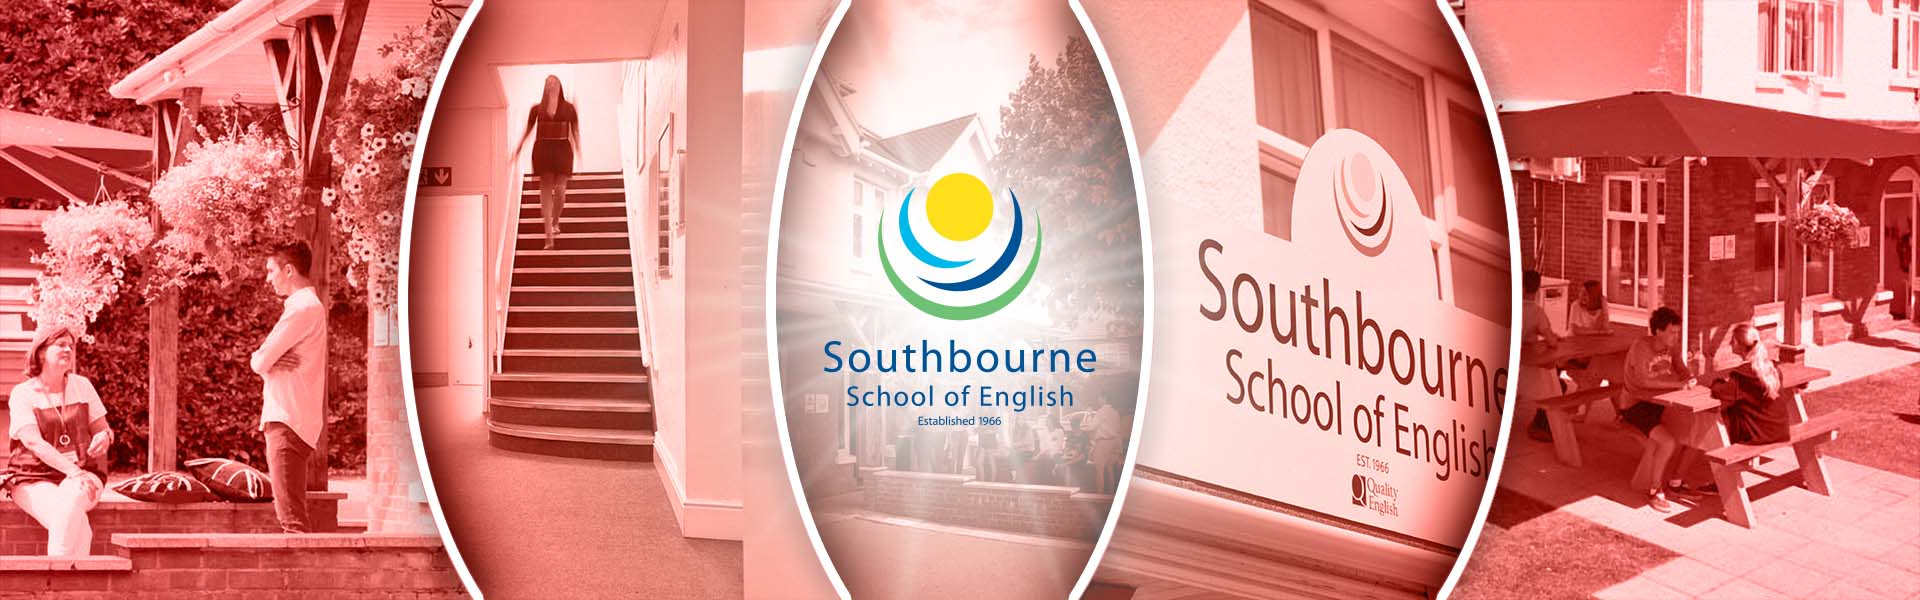 Southbourne School of English Dil Okulu